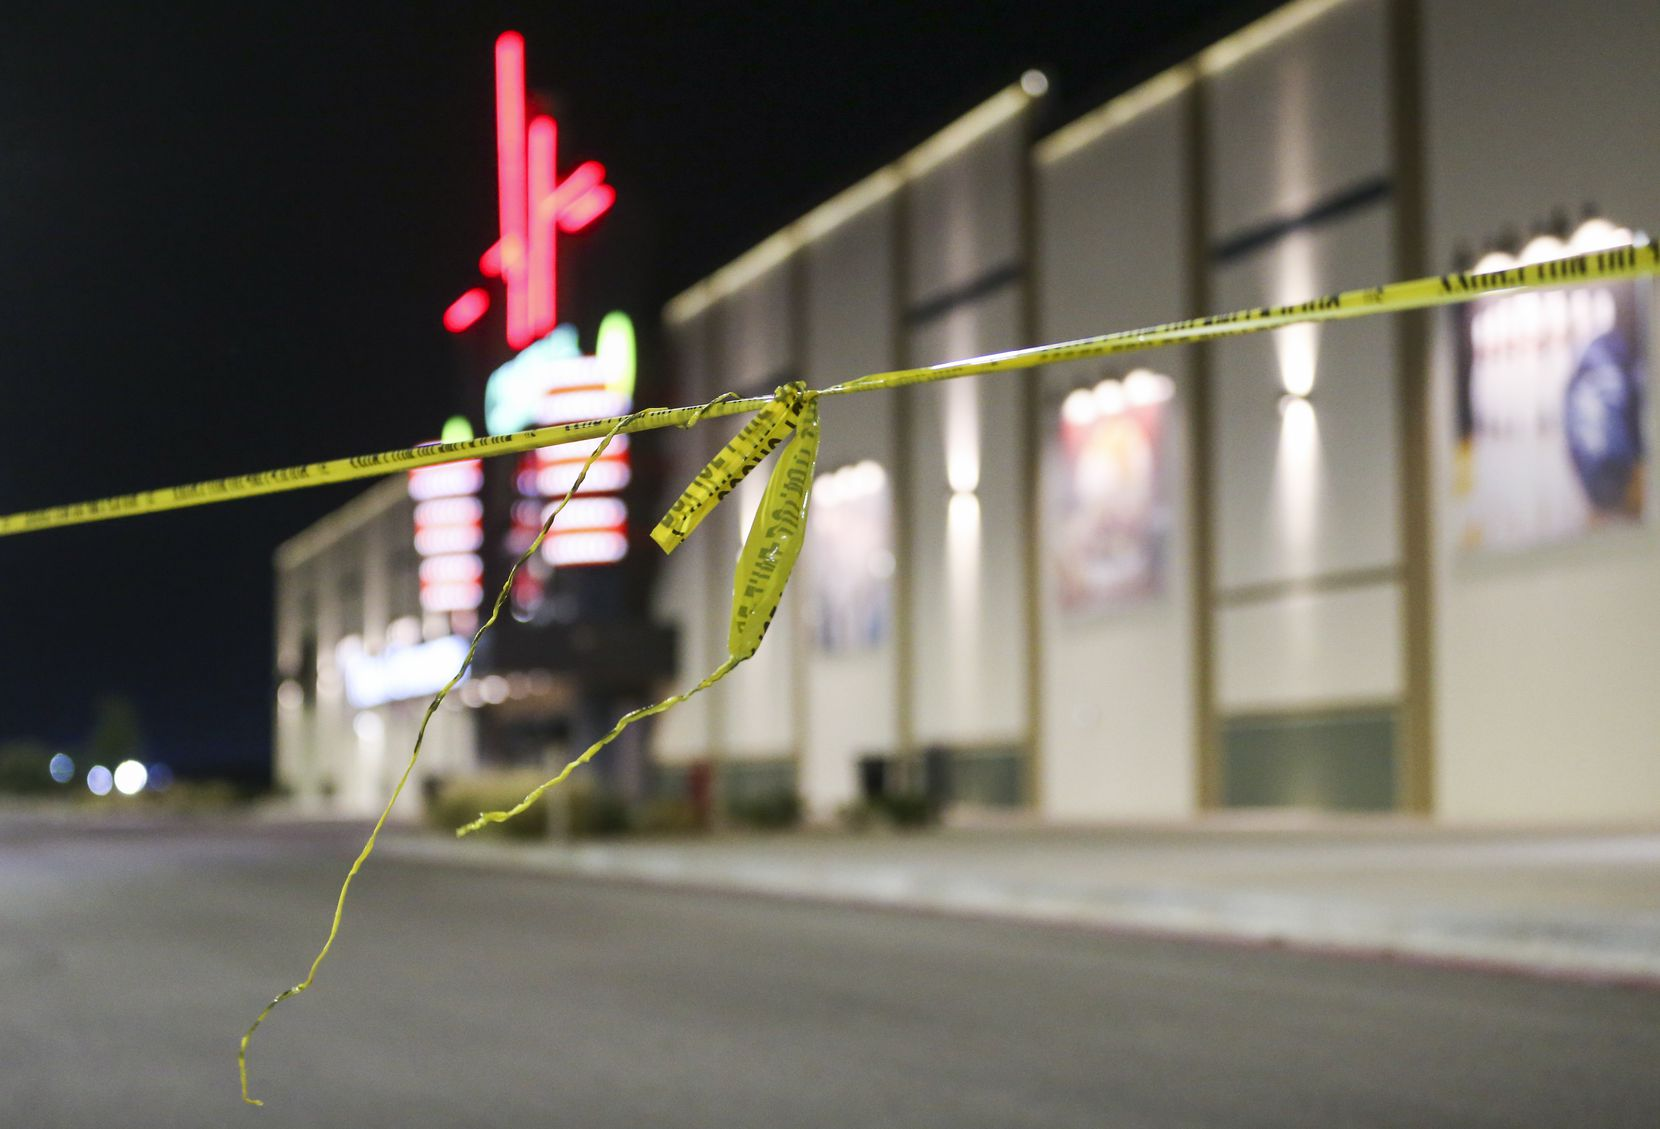 Police tape hangs at a Cinergy movie theatre Saturday, Aug. 31, 2019 in Odessa, Texas. At least five people died after more than 20 people were shot Saturday when a gunman hijacked a postal truck and began shooting randomly in the Odessa area of West Texas, authorities say.